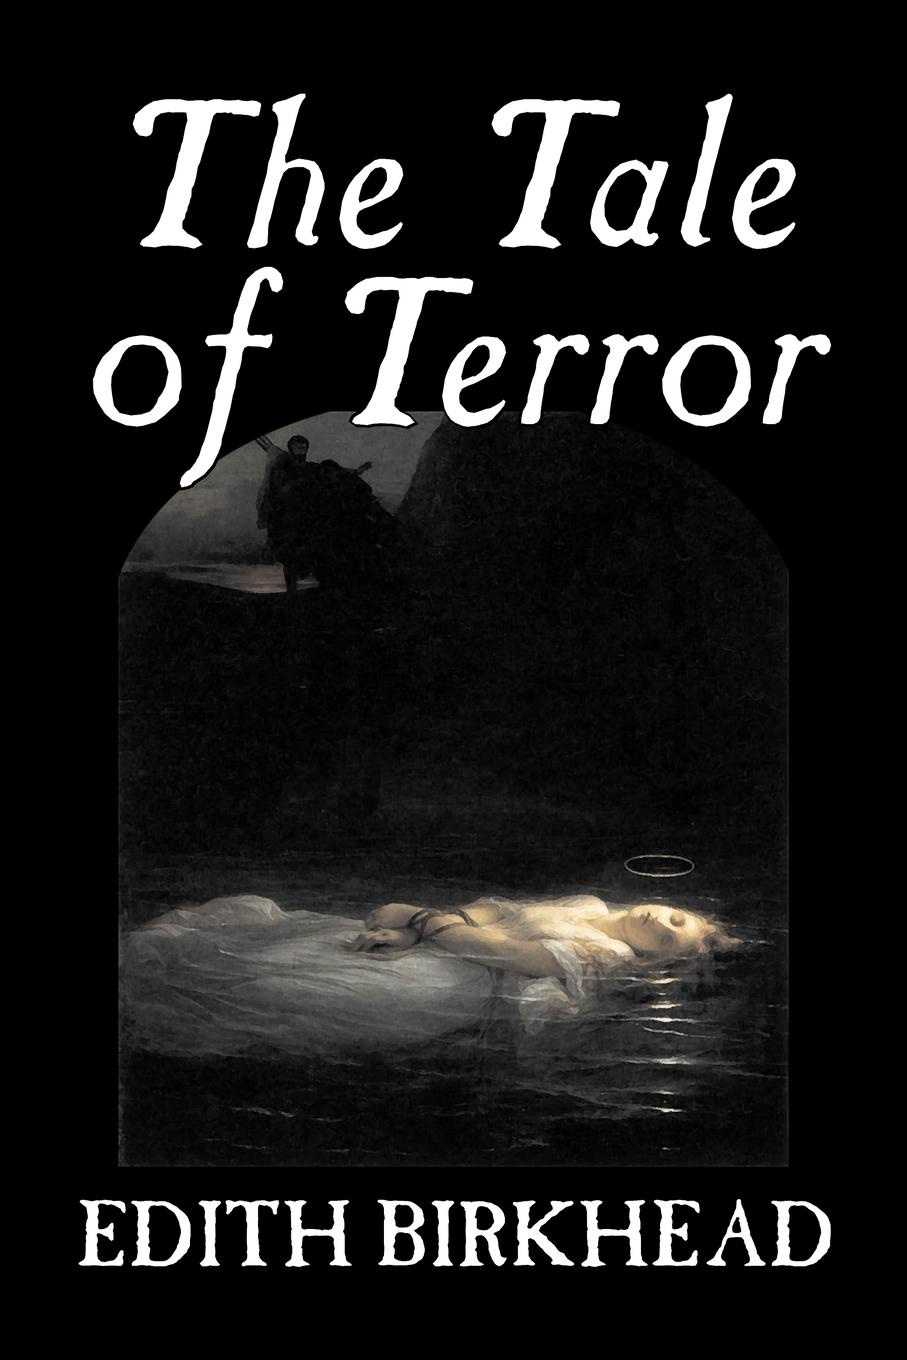 Edith Birkhead The Tale of Terror by Edith Birkhead, Travel, Literary Criticism